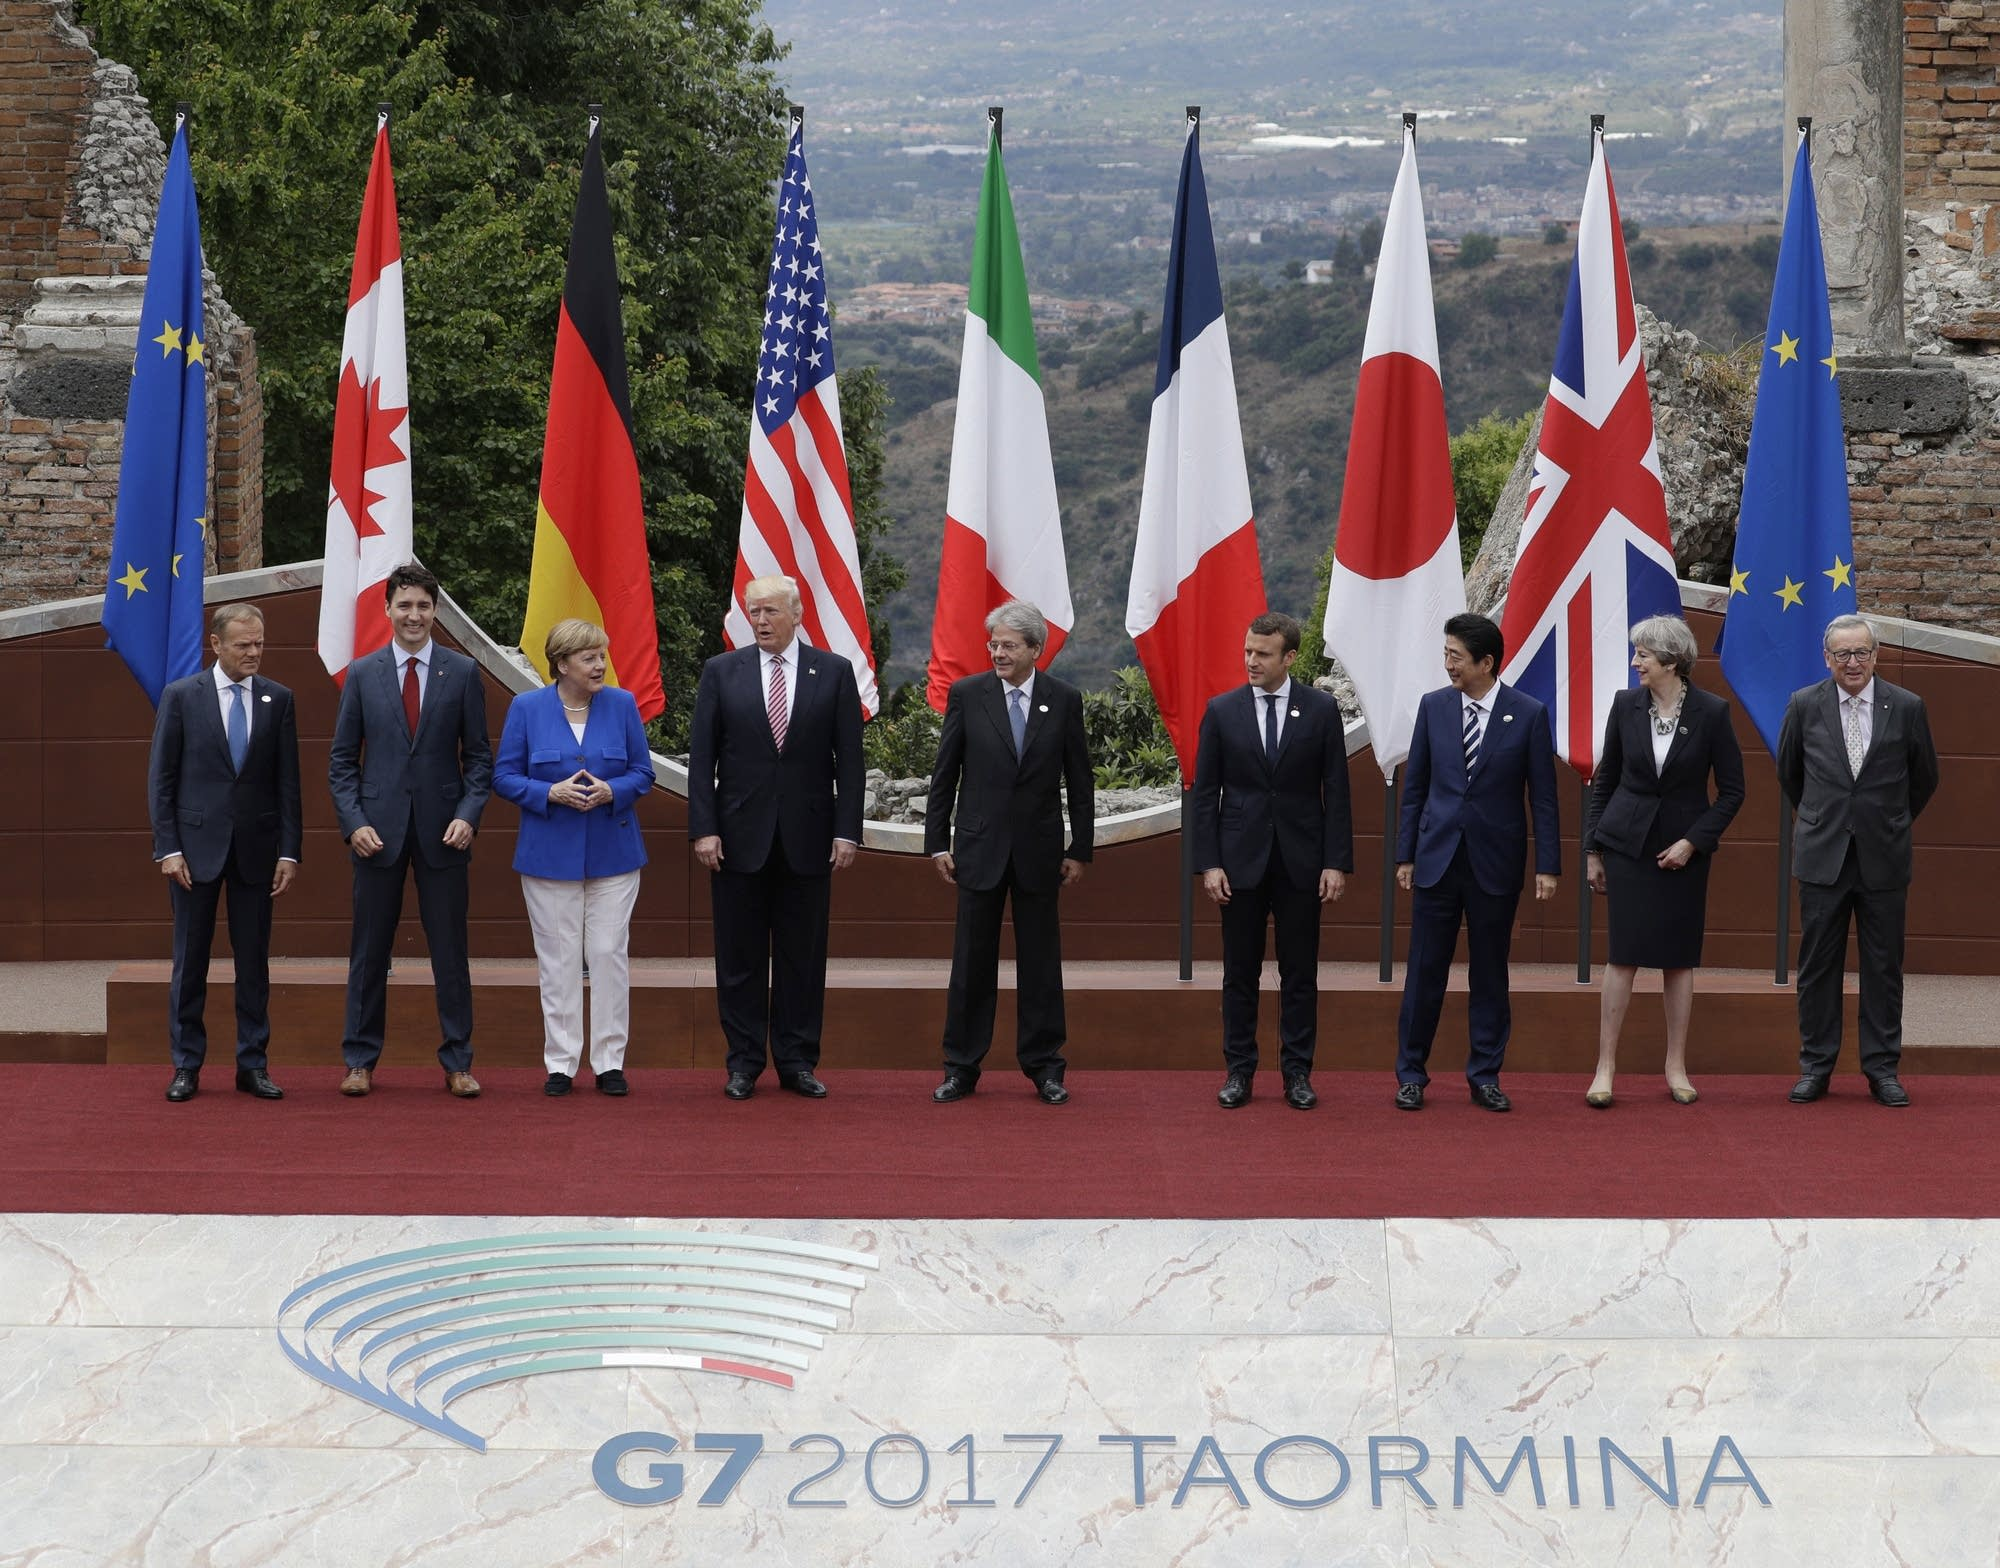 Hasil gambar untuk President Trump participates in the welcome ceremony for G7 leaders